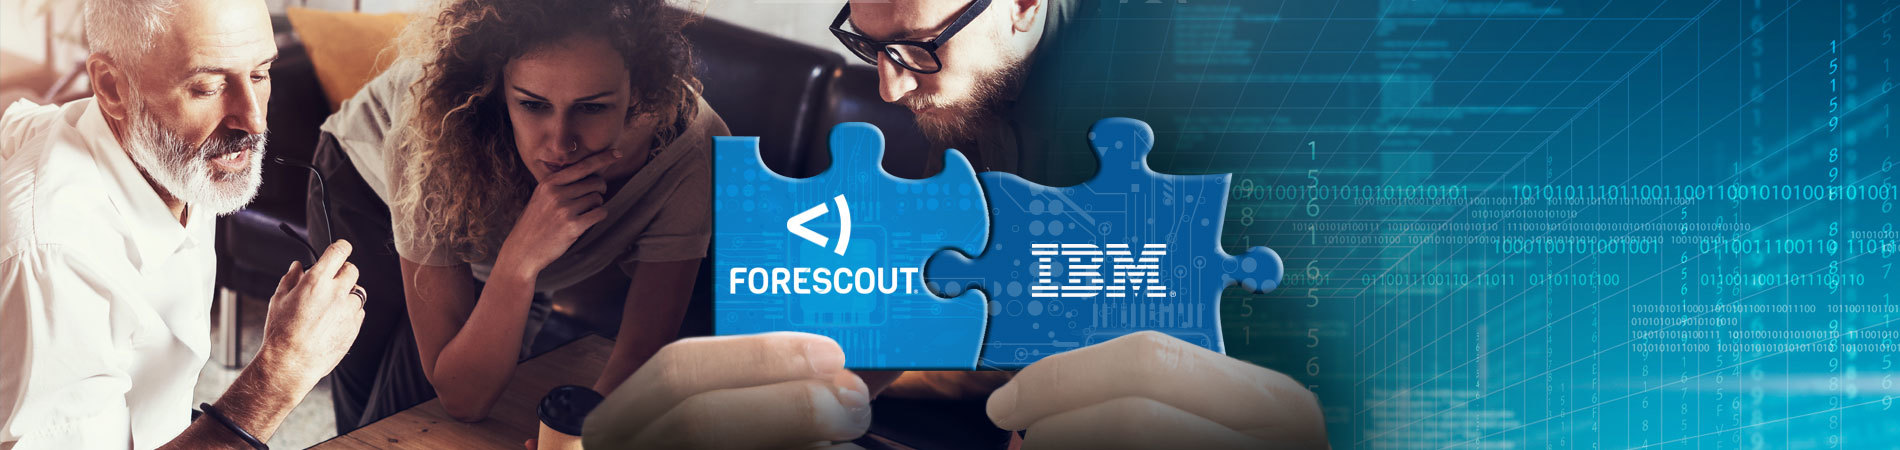 Forescout + IBM